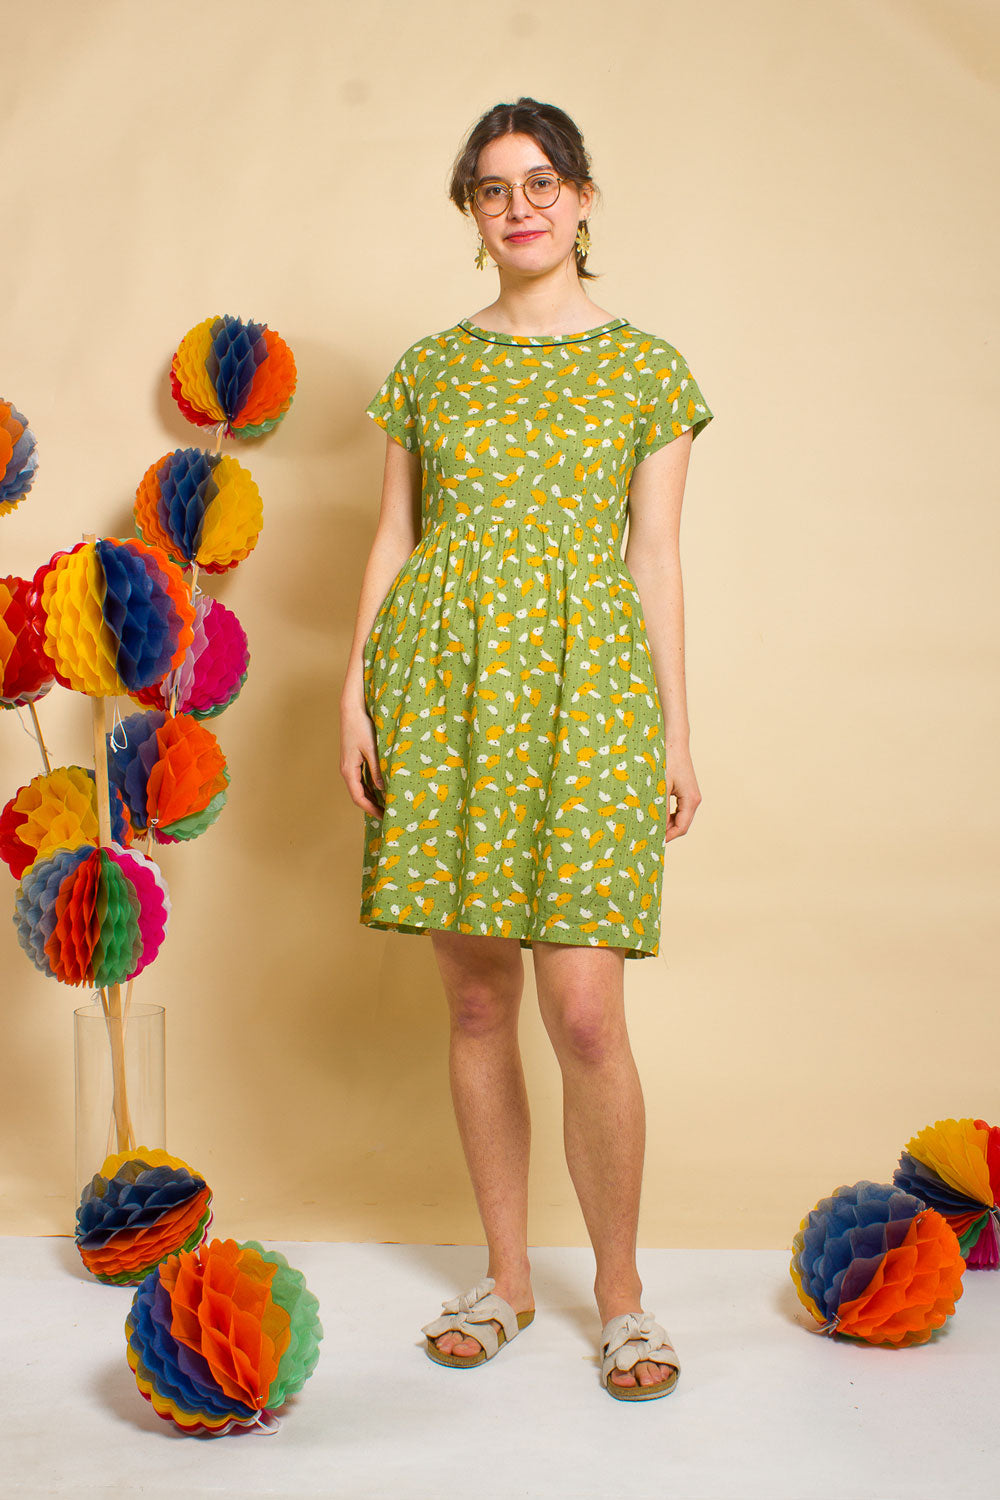 Confetti Fun Dress